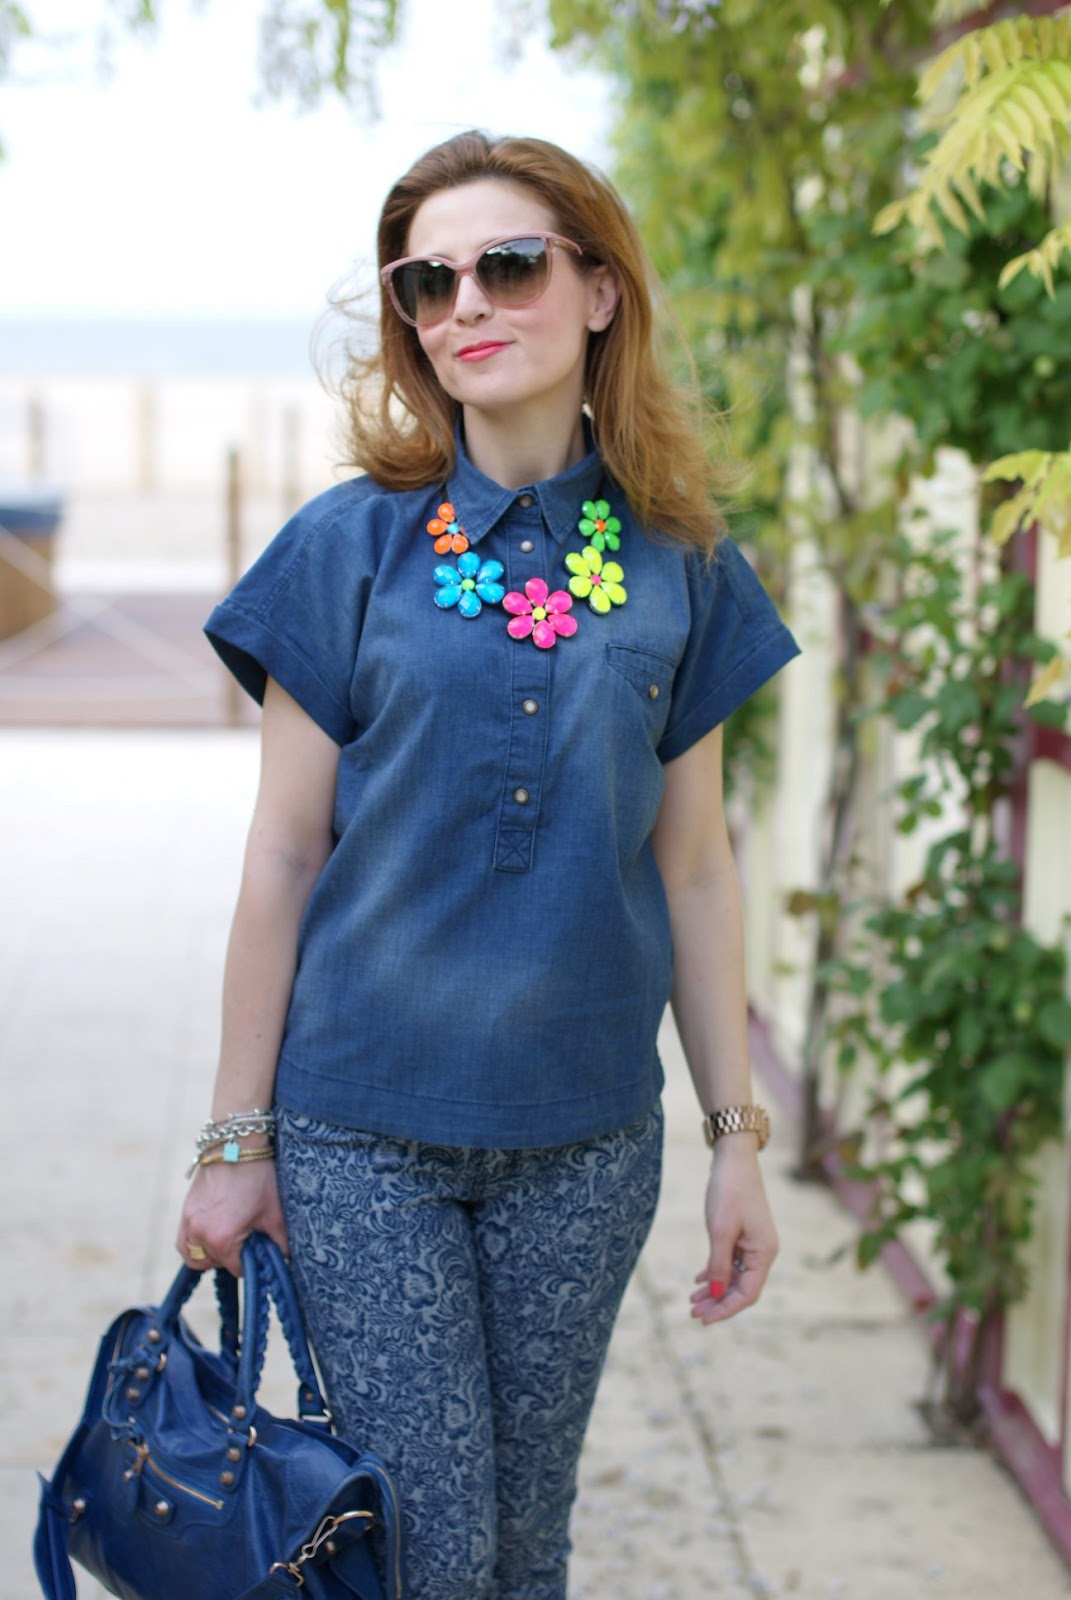 Zara denim shirt, daisy neon necklace, Fashion and Cookies